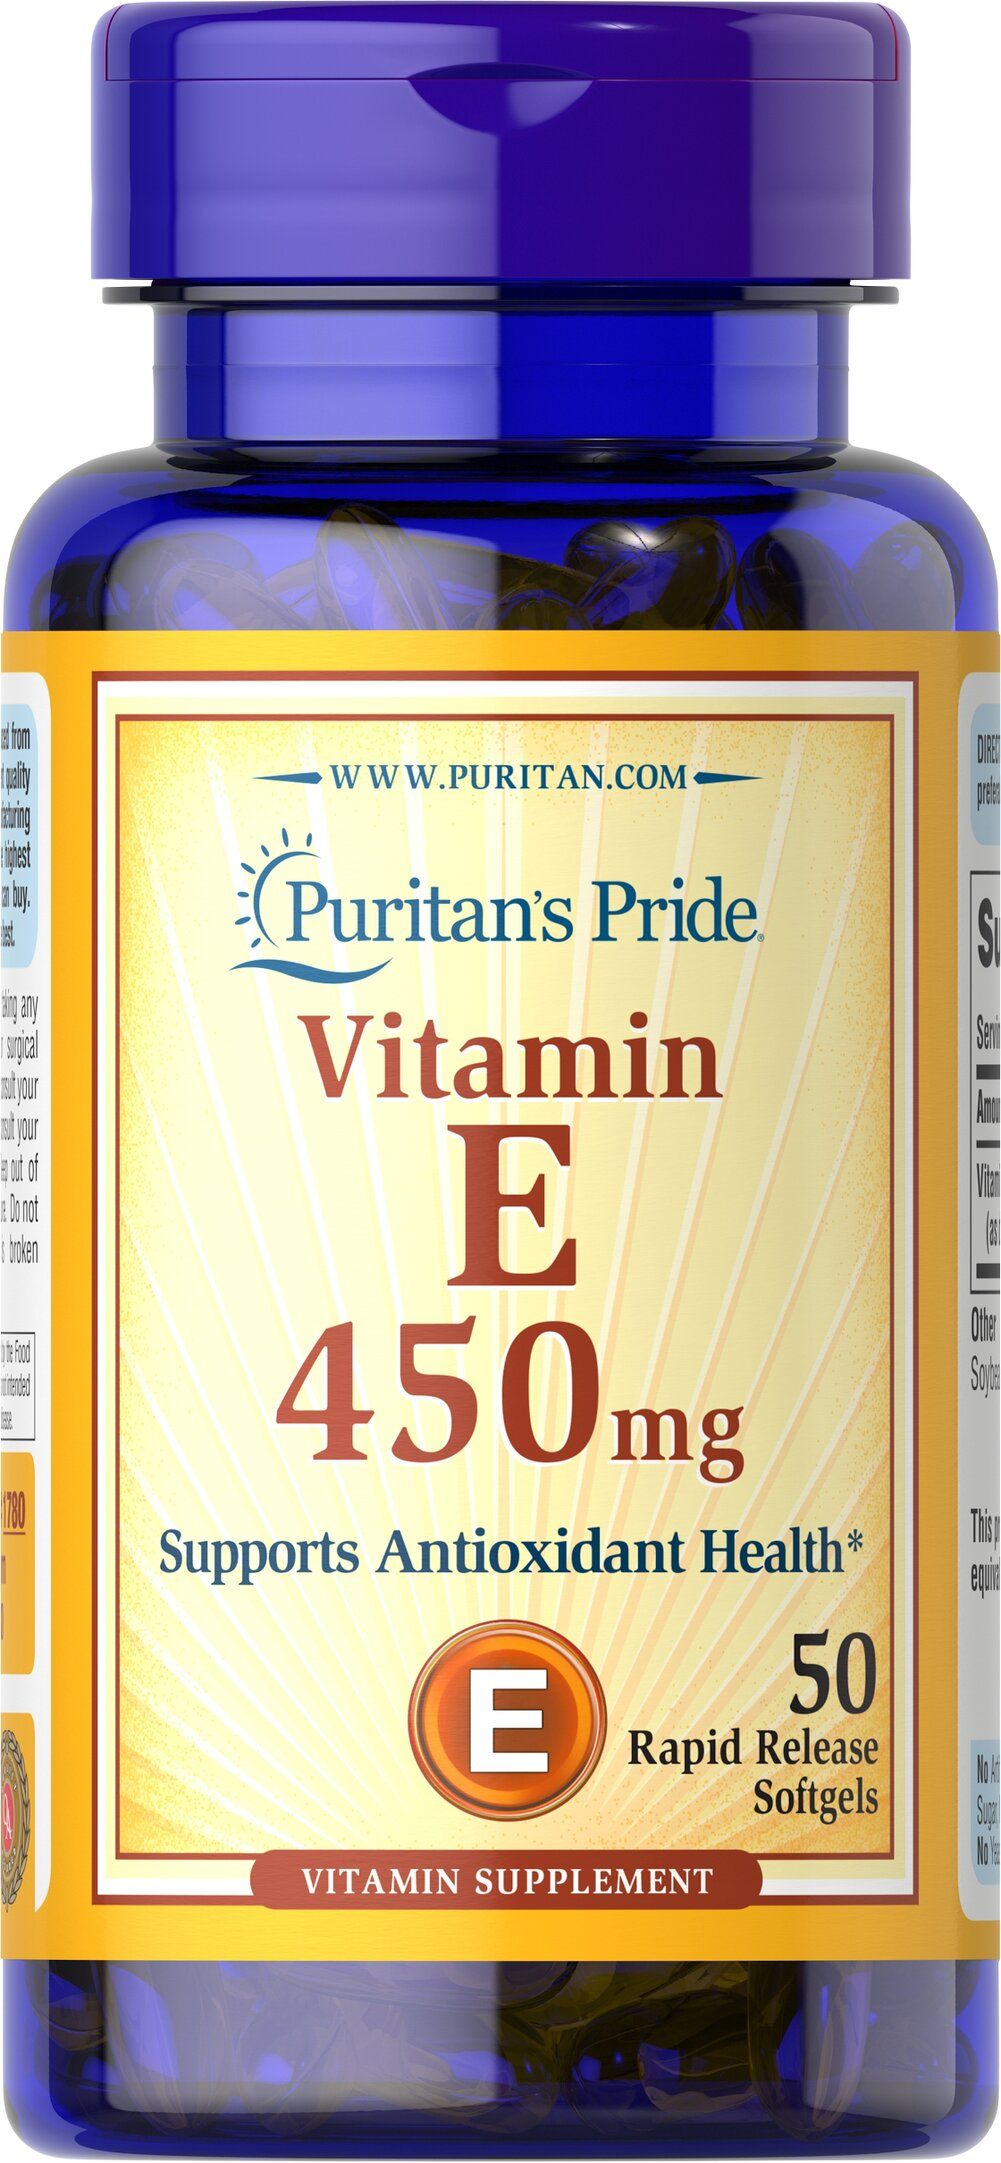 Vitamin E-1000 IU <p>Features dl-Alpha Vitamin E, a synthetic form of Vitamin E</p><p>Promotes heart and circulatory health**</p><p>Contributes to healthy skin and immune function**</p><p>Rapid release liquid softgels are easy to swallow</p><p>One a day formula</p> 50 Softgels 1000 IU $11.99